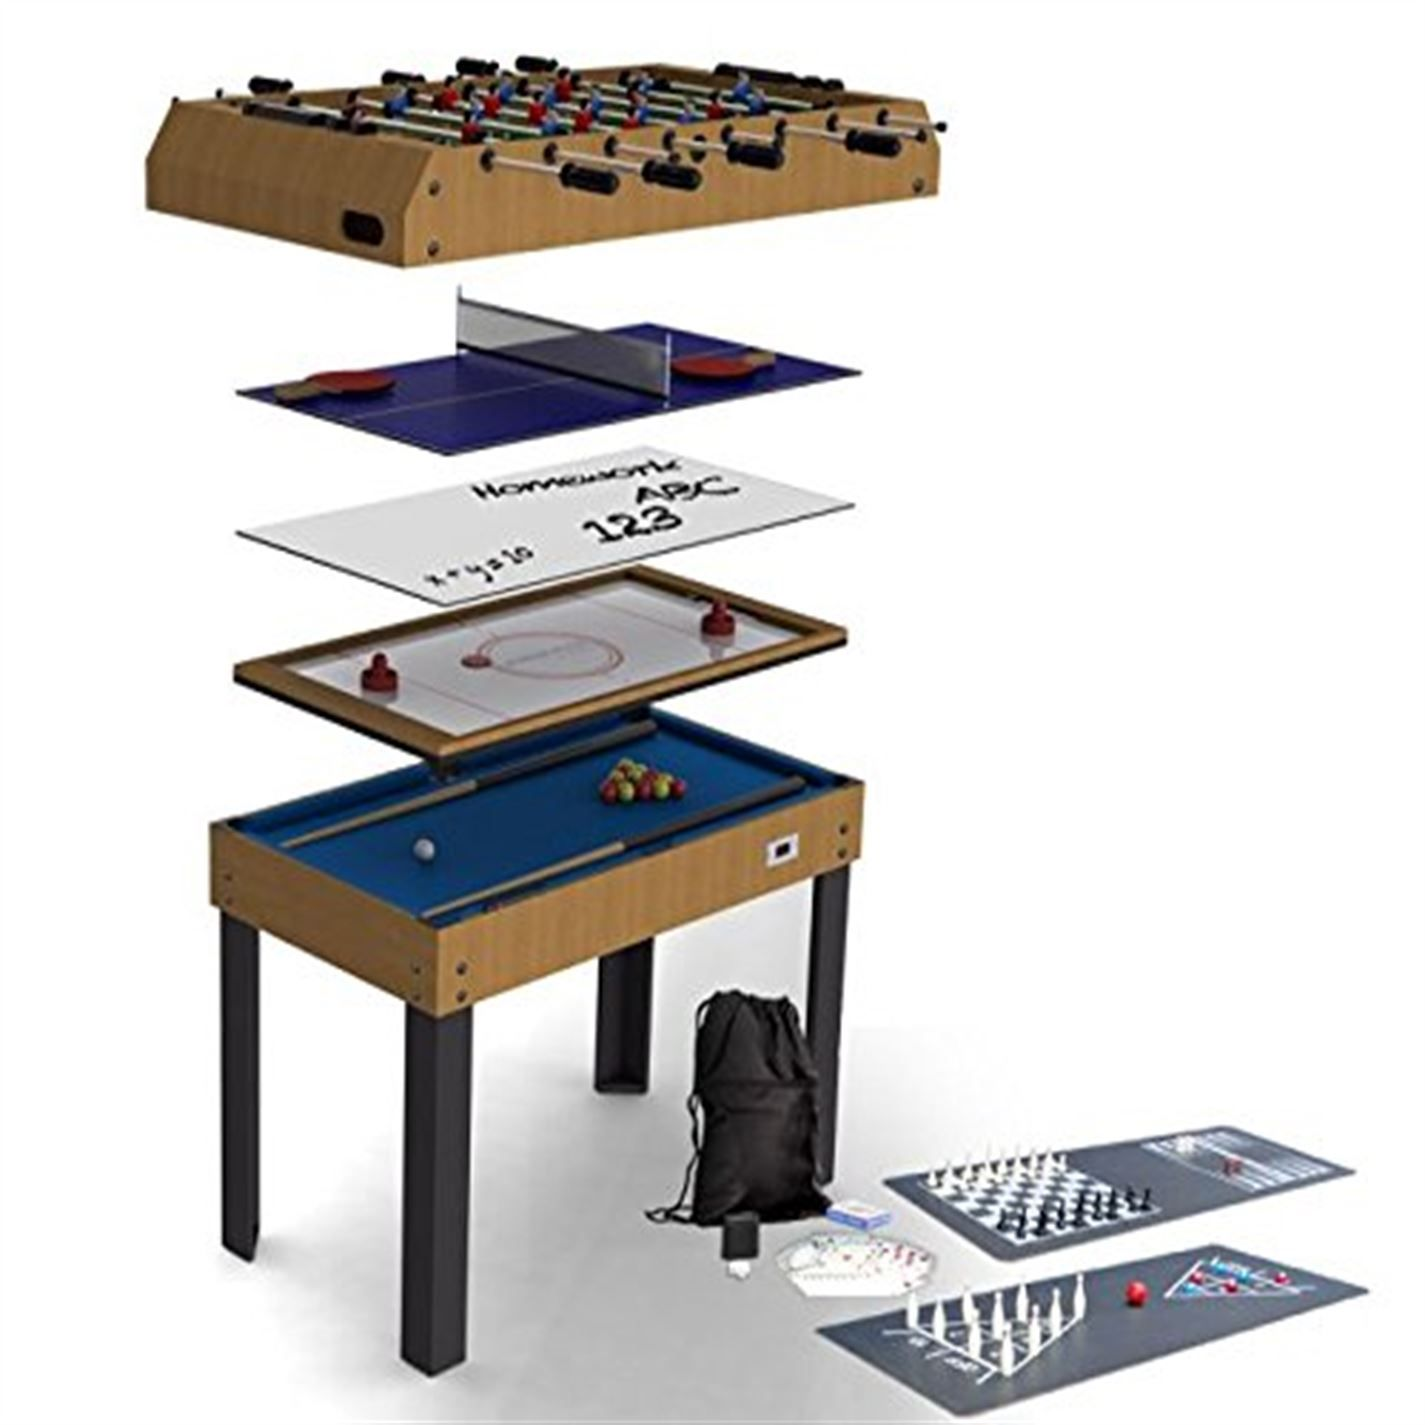 Riley Riley 4ft 4 In 1 Games Table Games Multi Game Table Table Games Air Hockey